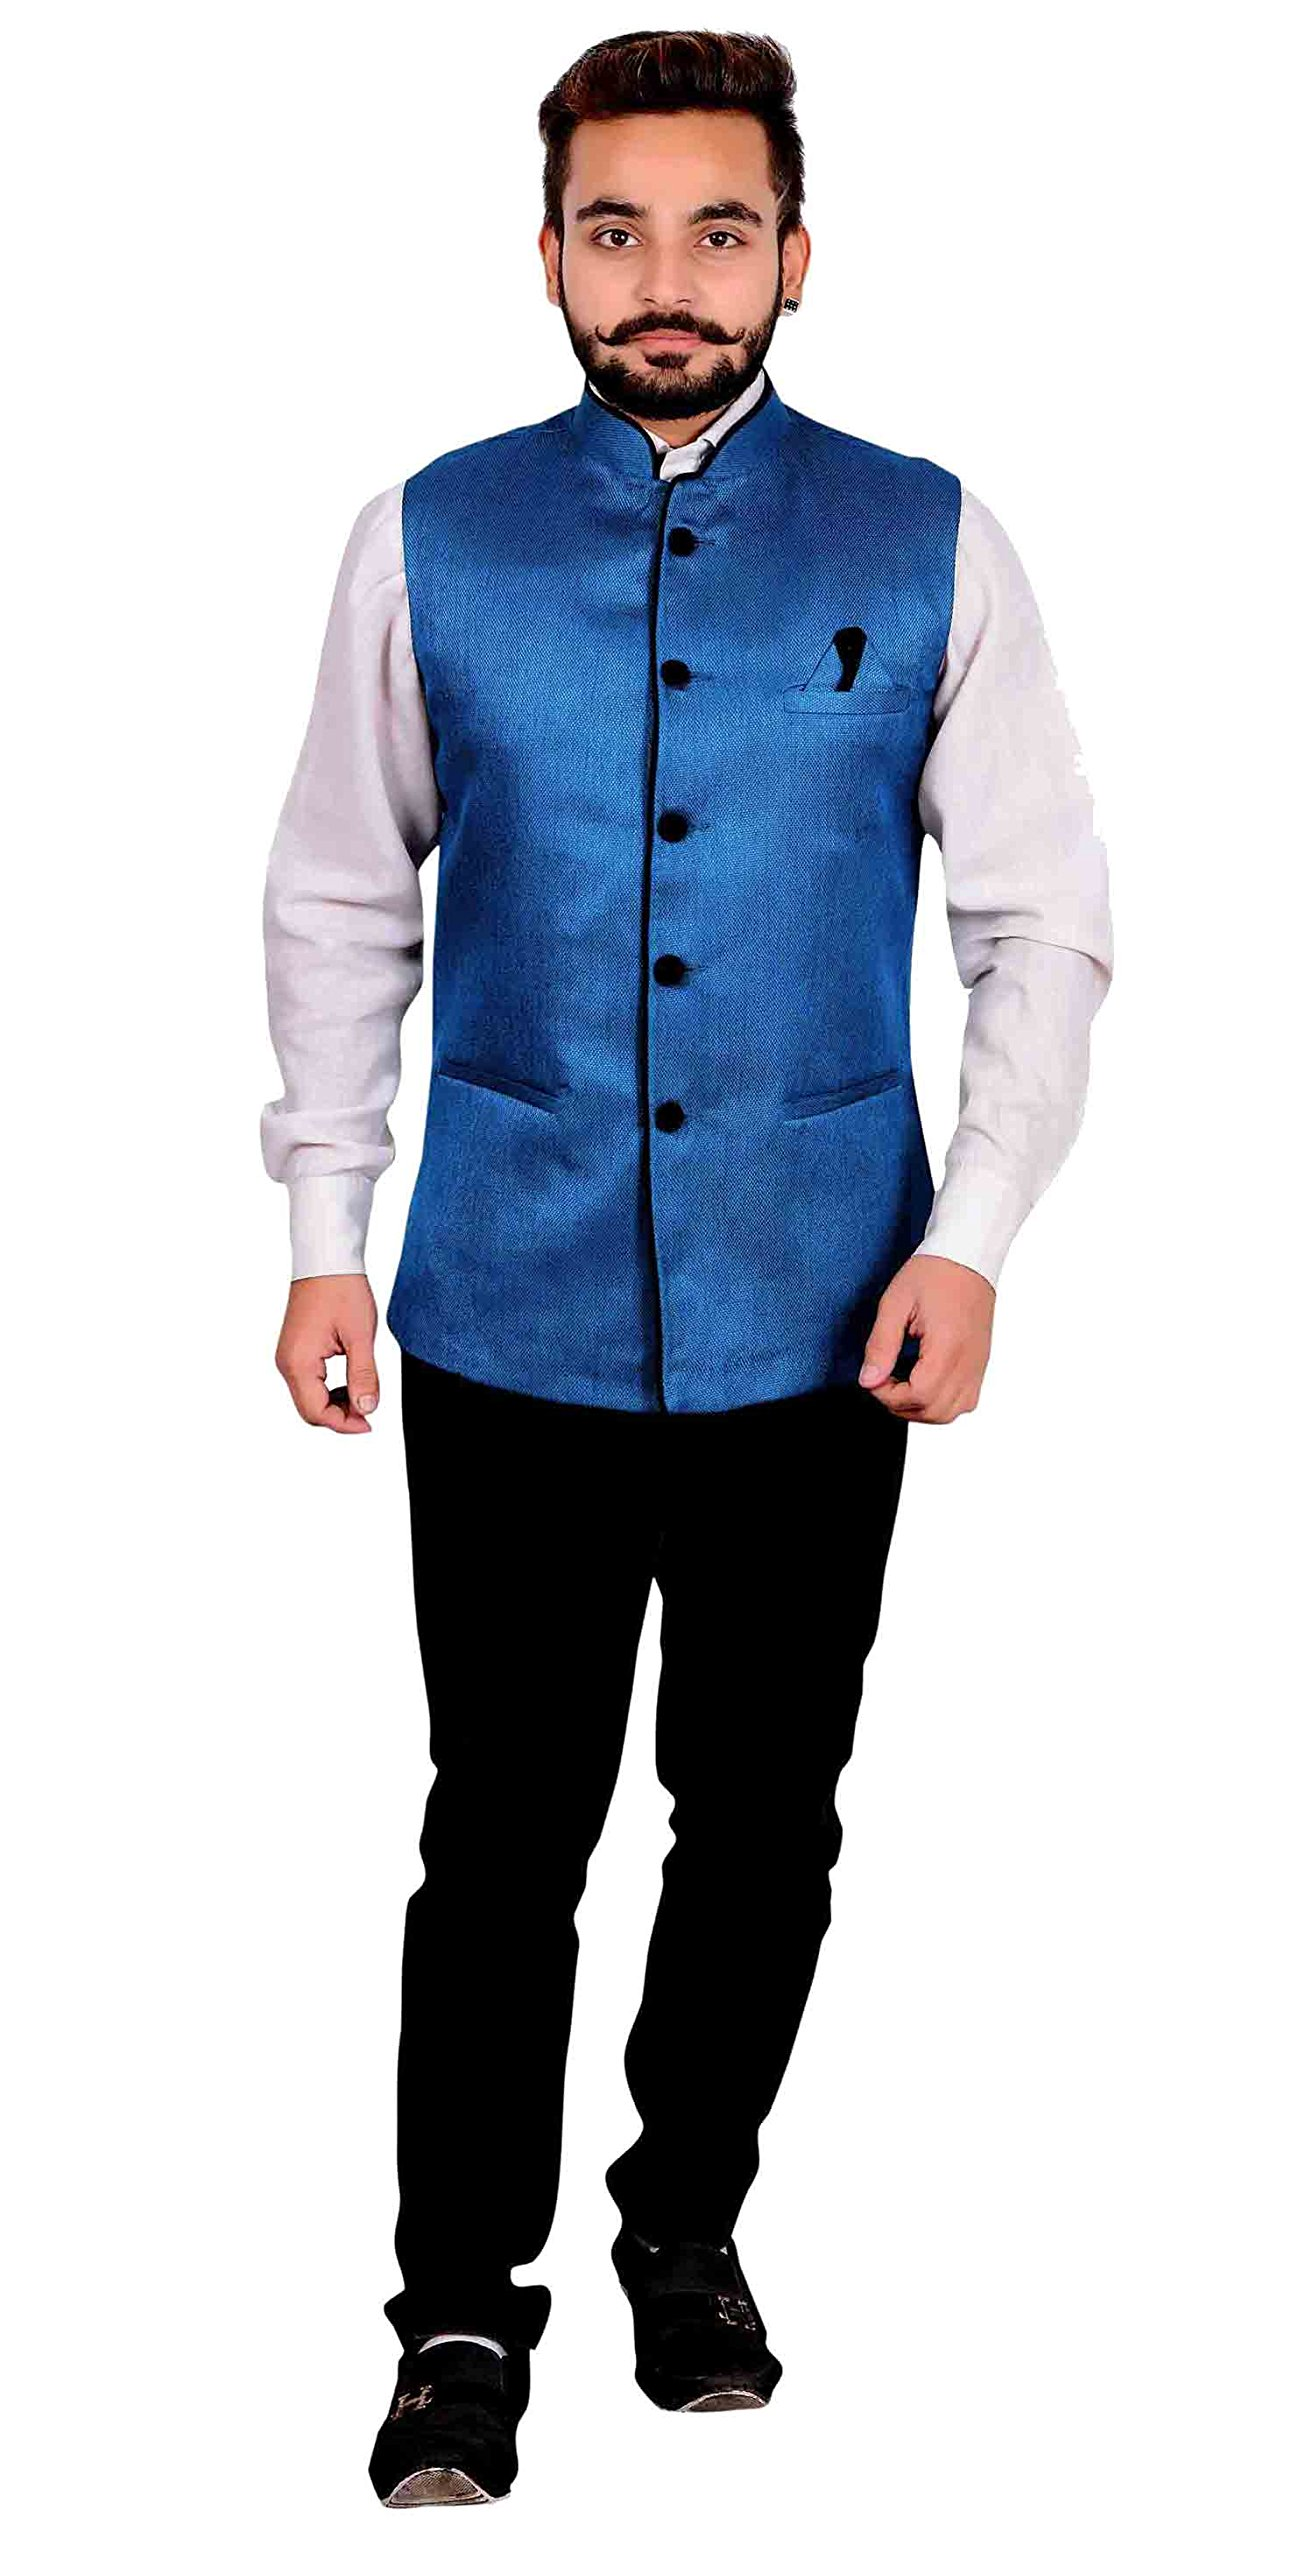 Men's Nehru Gandhi style Waistcoat for shalwar kameez for Indian Bollywood theme party costume 1012 (36 (XS), Blue) by Desi Sarees